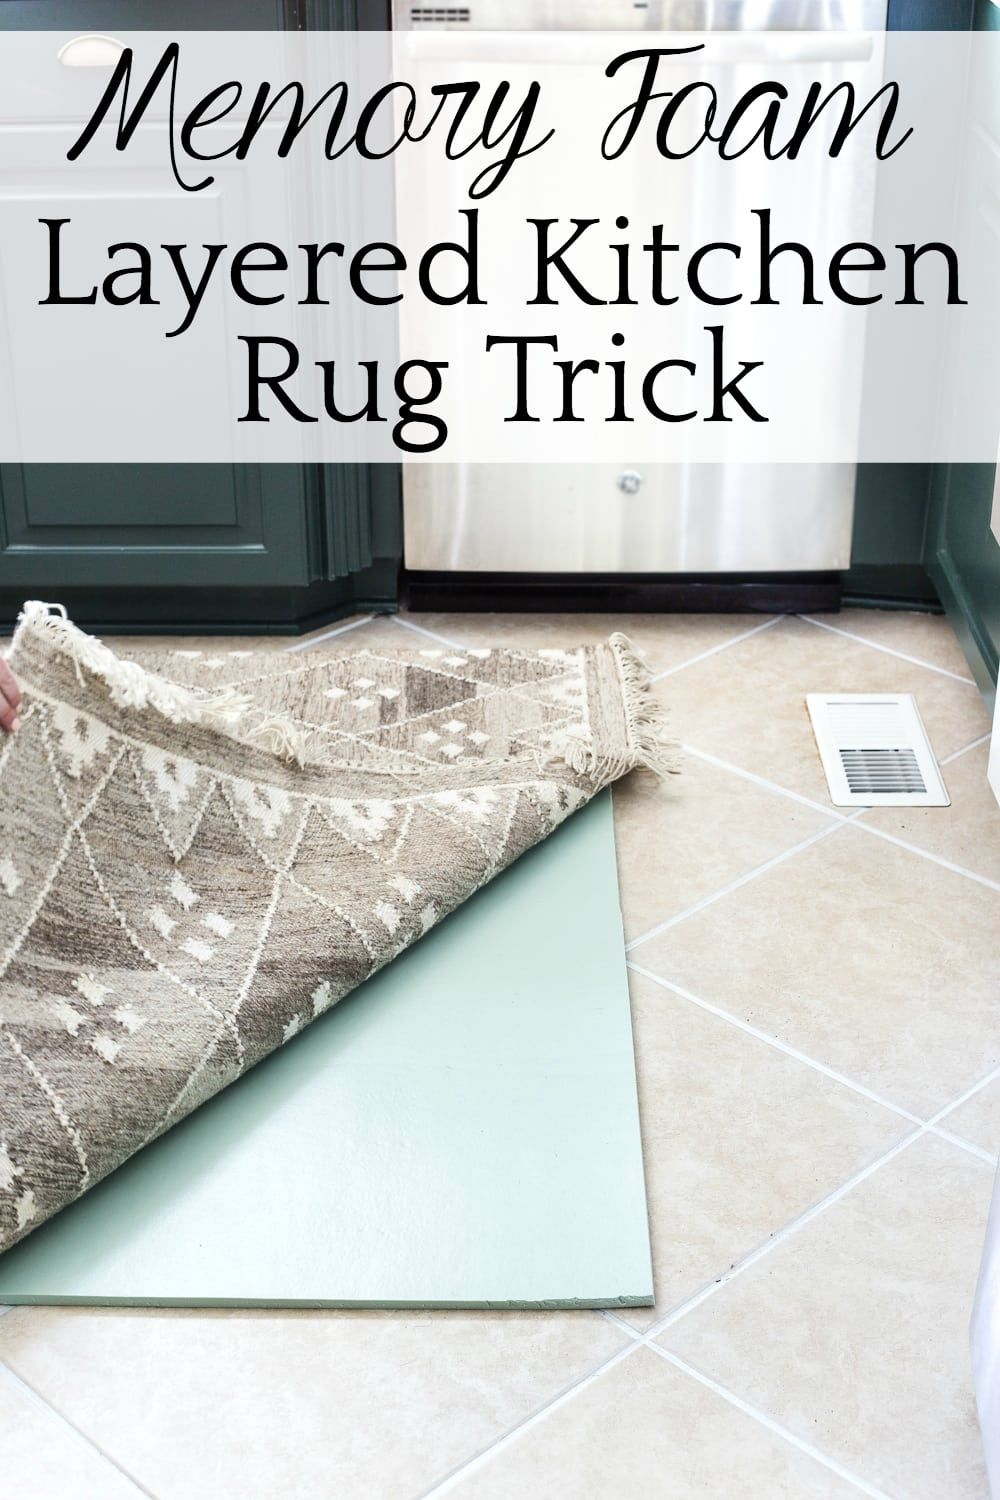 Memory Foam Layered Kitchen Rug and Tile Grout Refresh ...